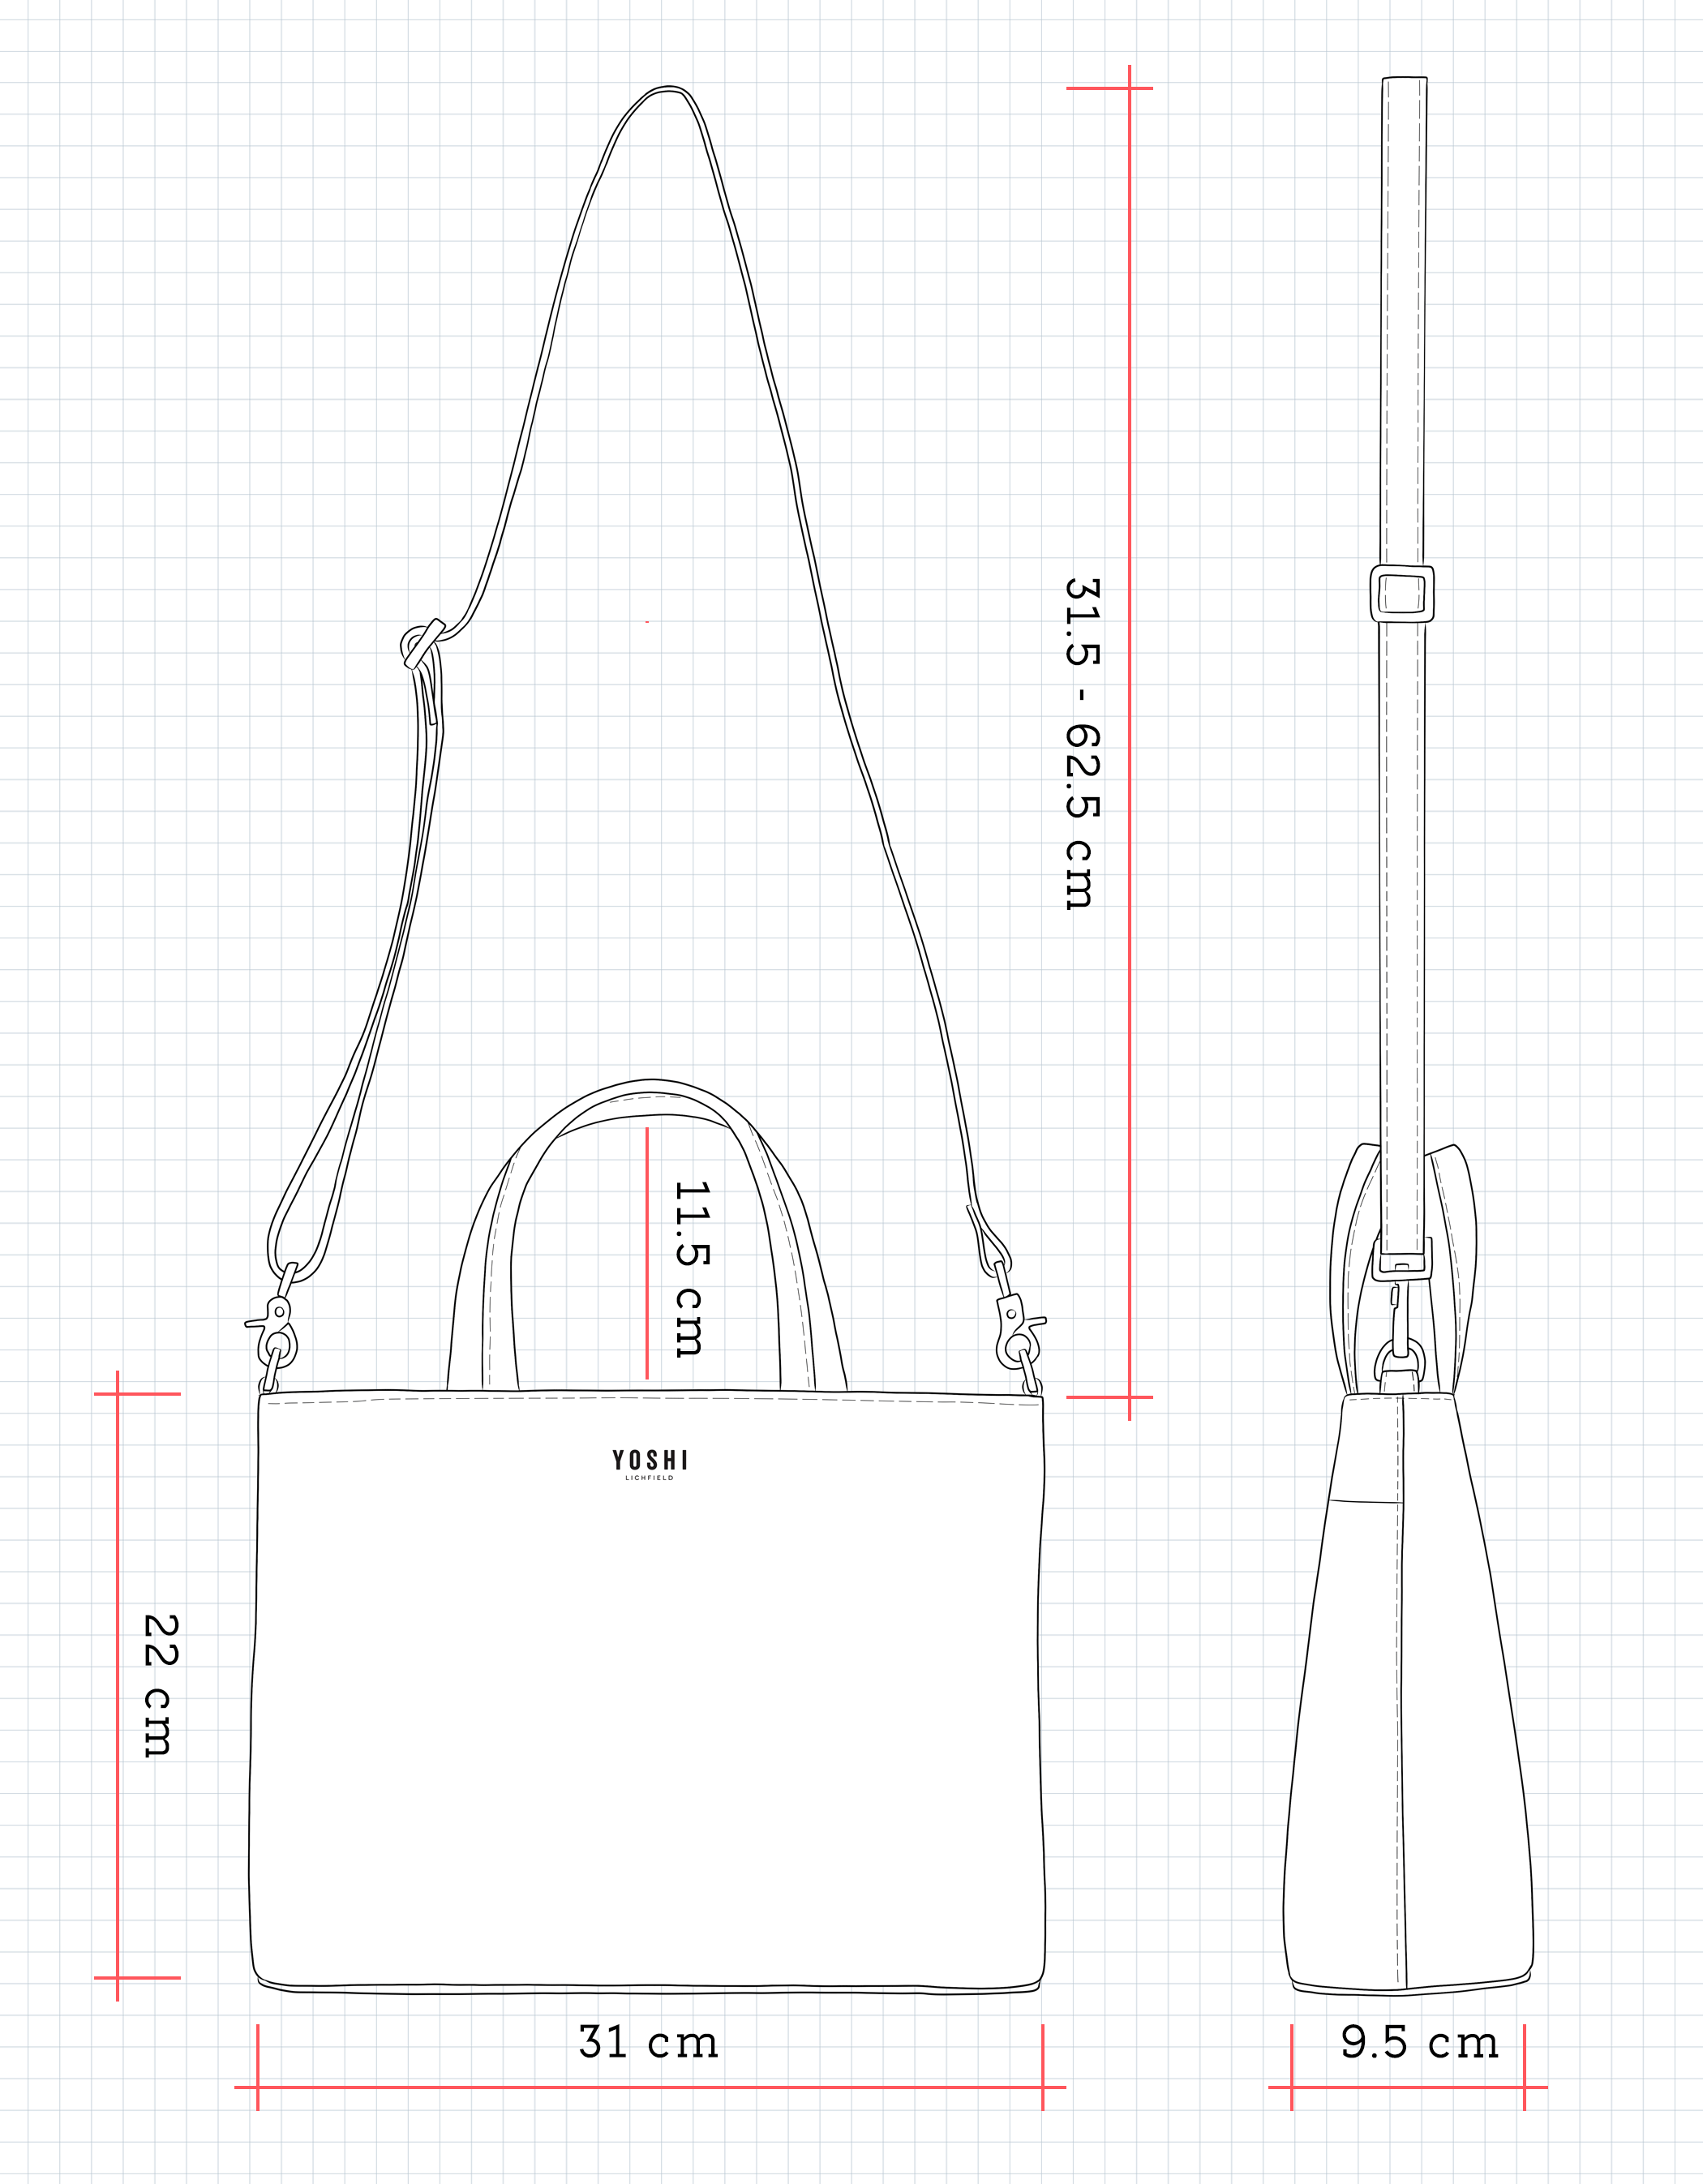 Y26 Leather Grab Bag Dimensions